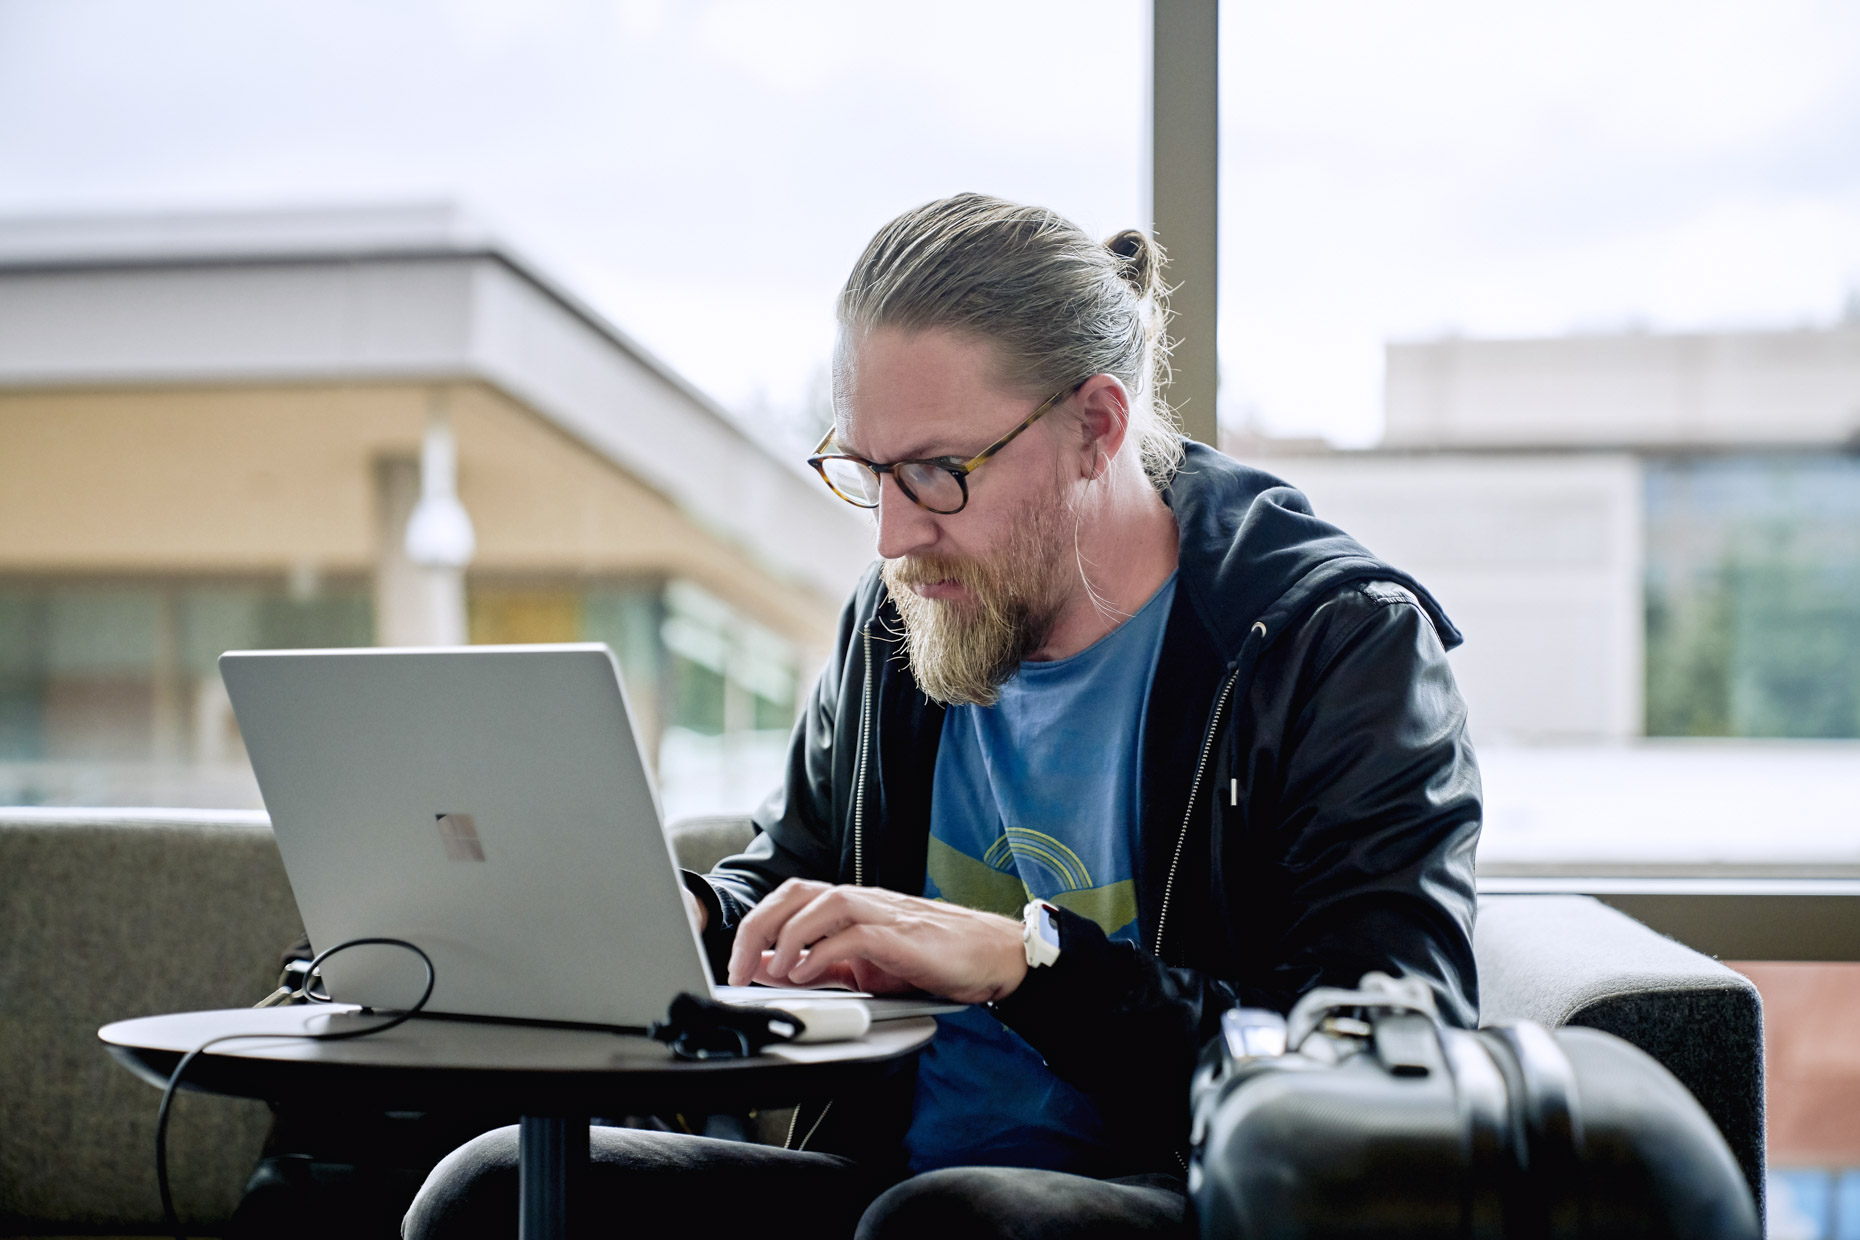 Bearded man working on laptop in airport